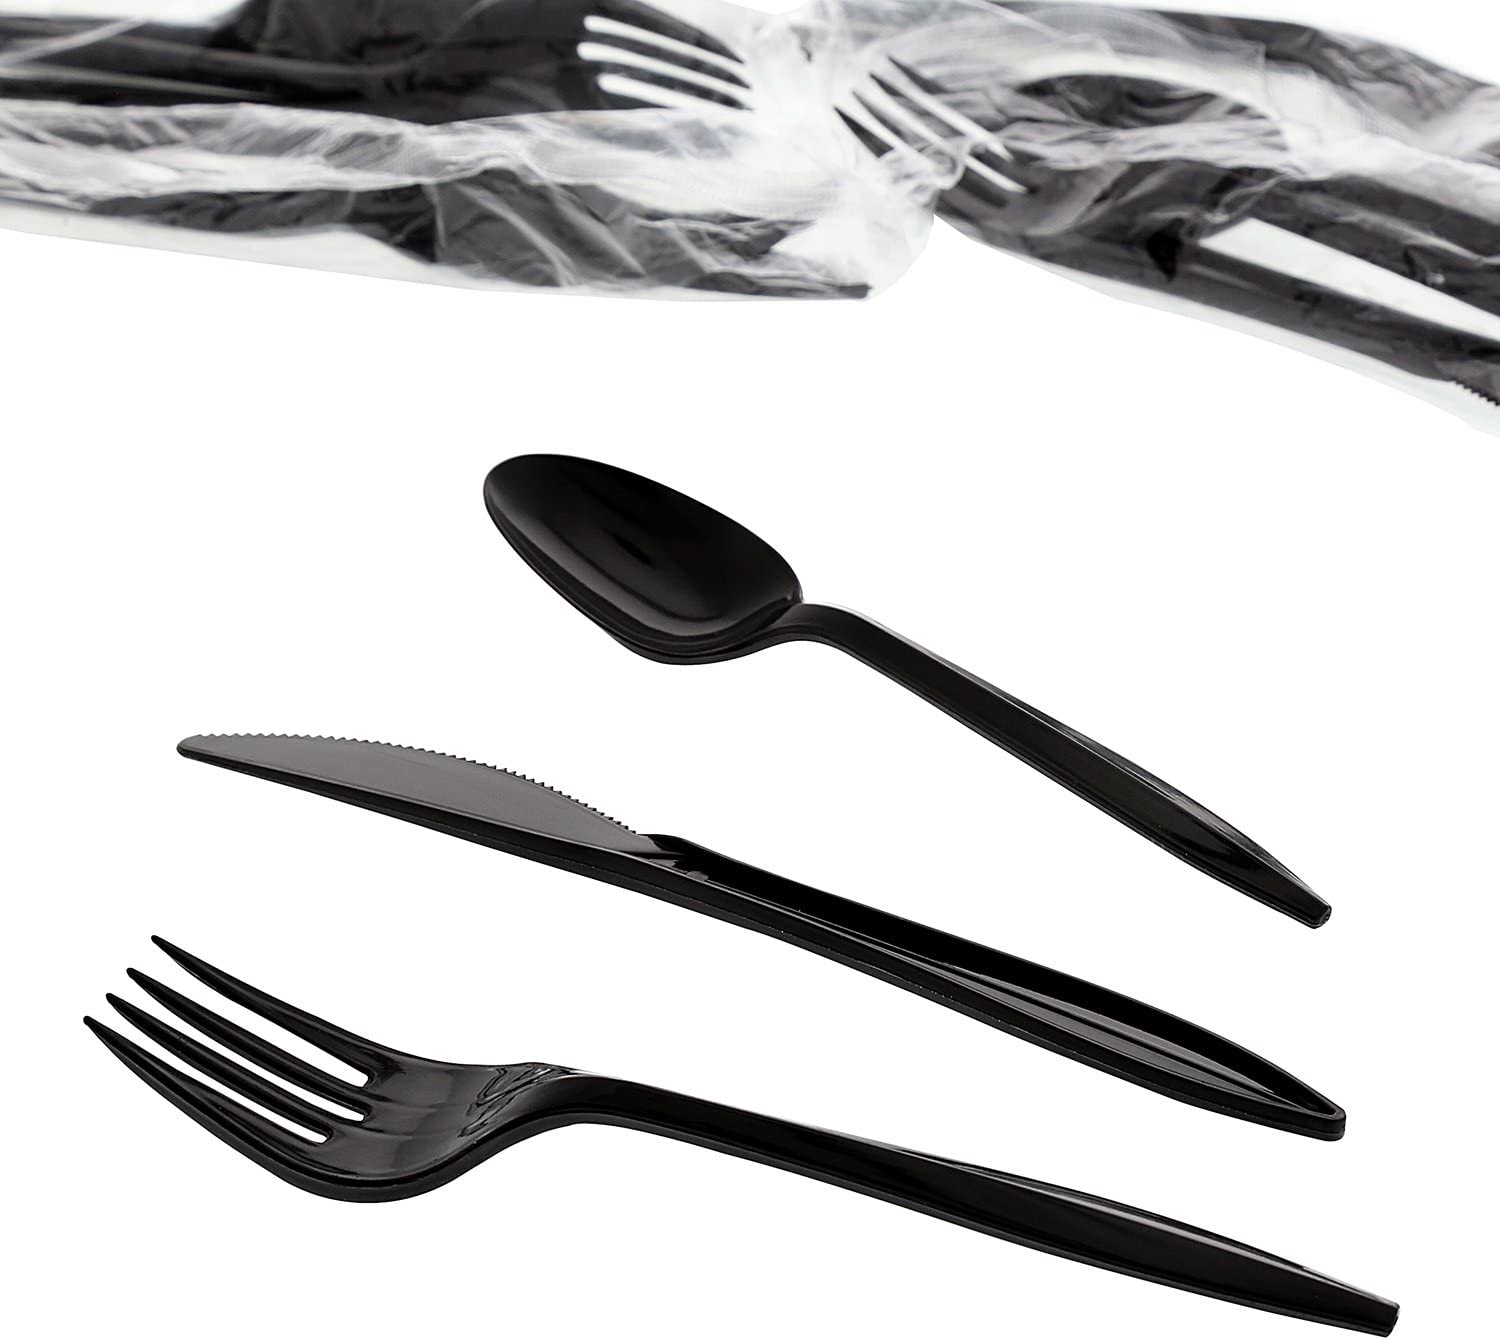 Salt And Pepper Packets Case Of 250 Black Heavy Weight Fork Knife Amercare Six Piece Meal Kit With 13 X 17 Napkin And Teaspoon Health Household Kolenik Forks